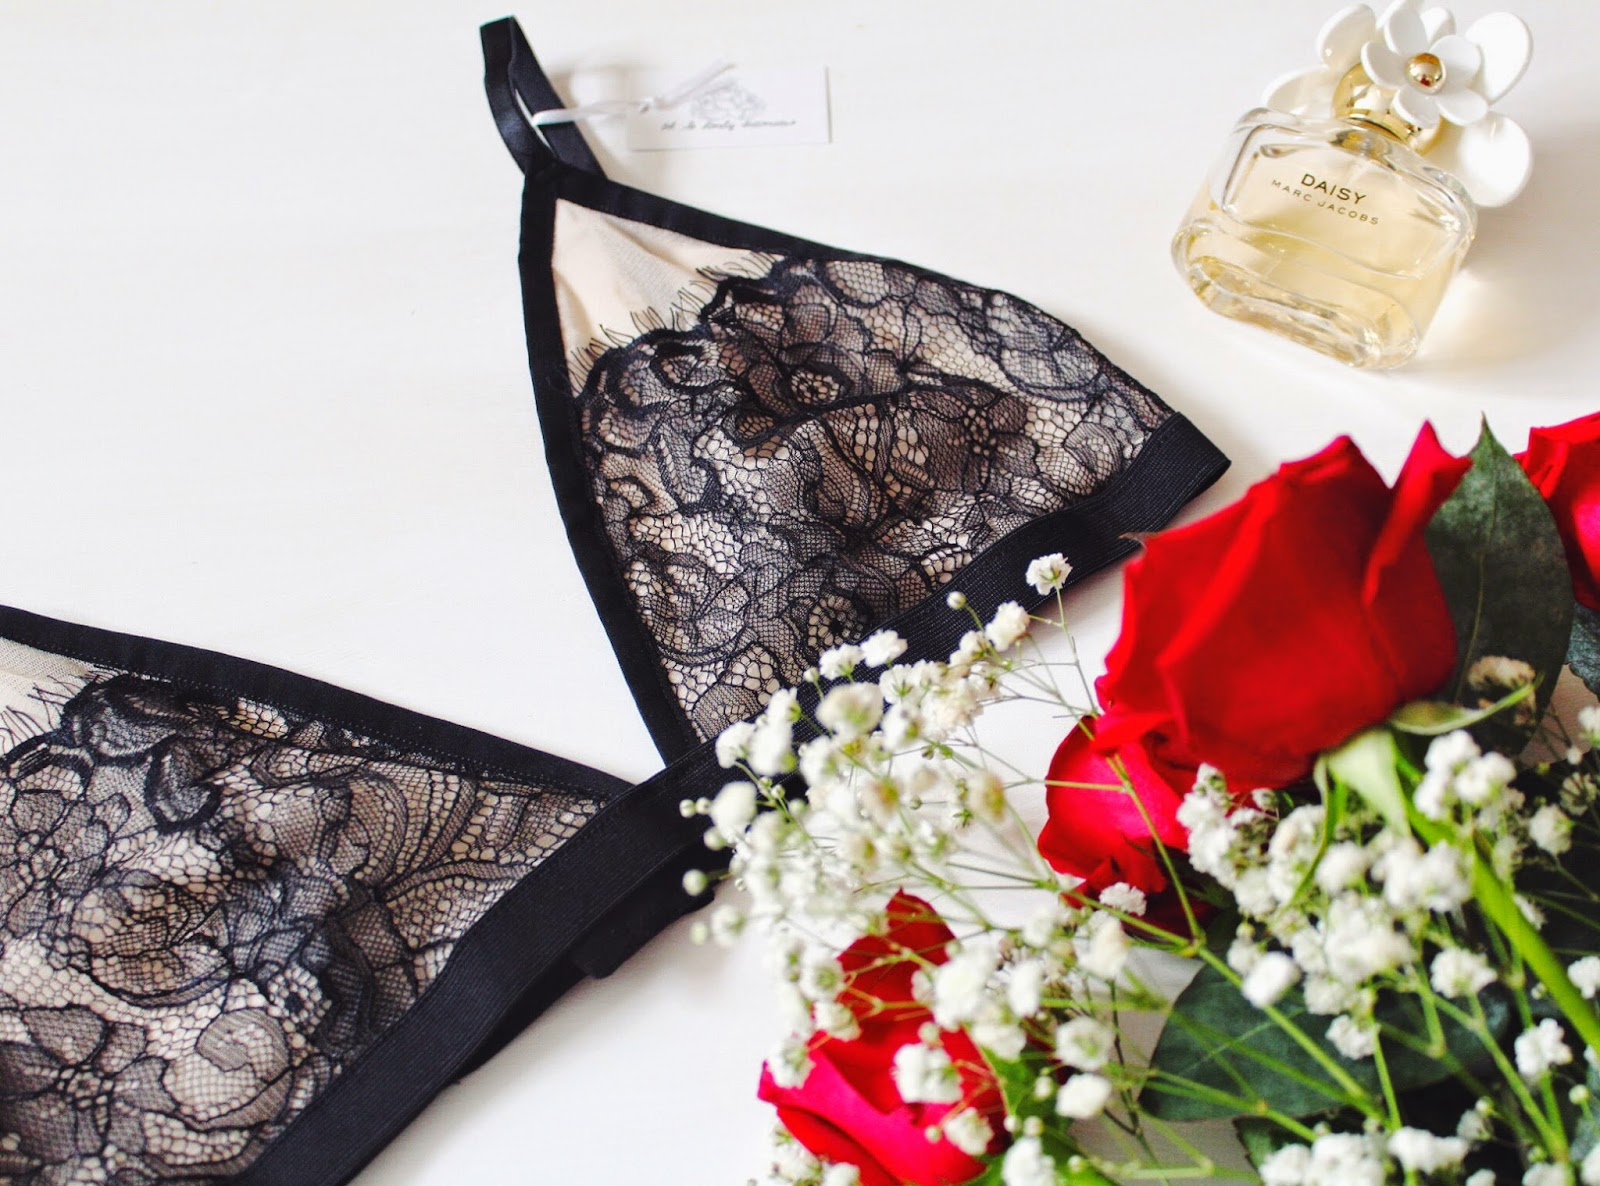 fbloggers, fashion, fashionbloggers, ohsolovelyintimates, wiw, underwear, lingerie, marcjacobs, marcjacobsdaisy, asseenonme, fblogger, fashionblogger, lace, lacebralette, blacklace, halcyonvelvet, lotd, lookoftheday